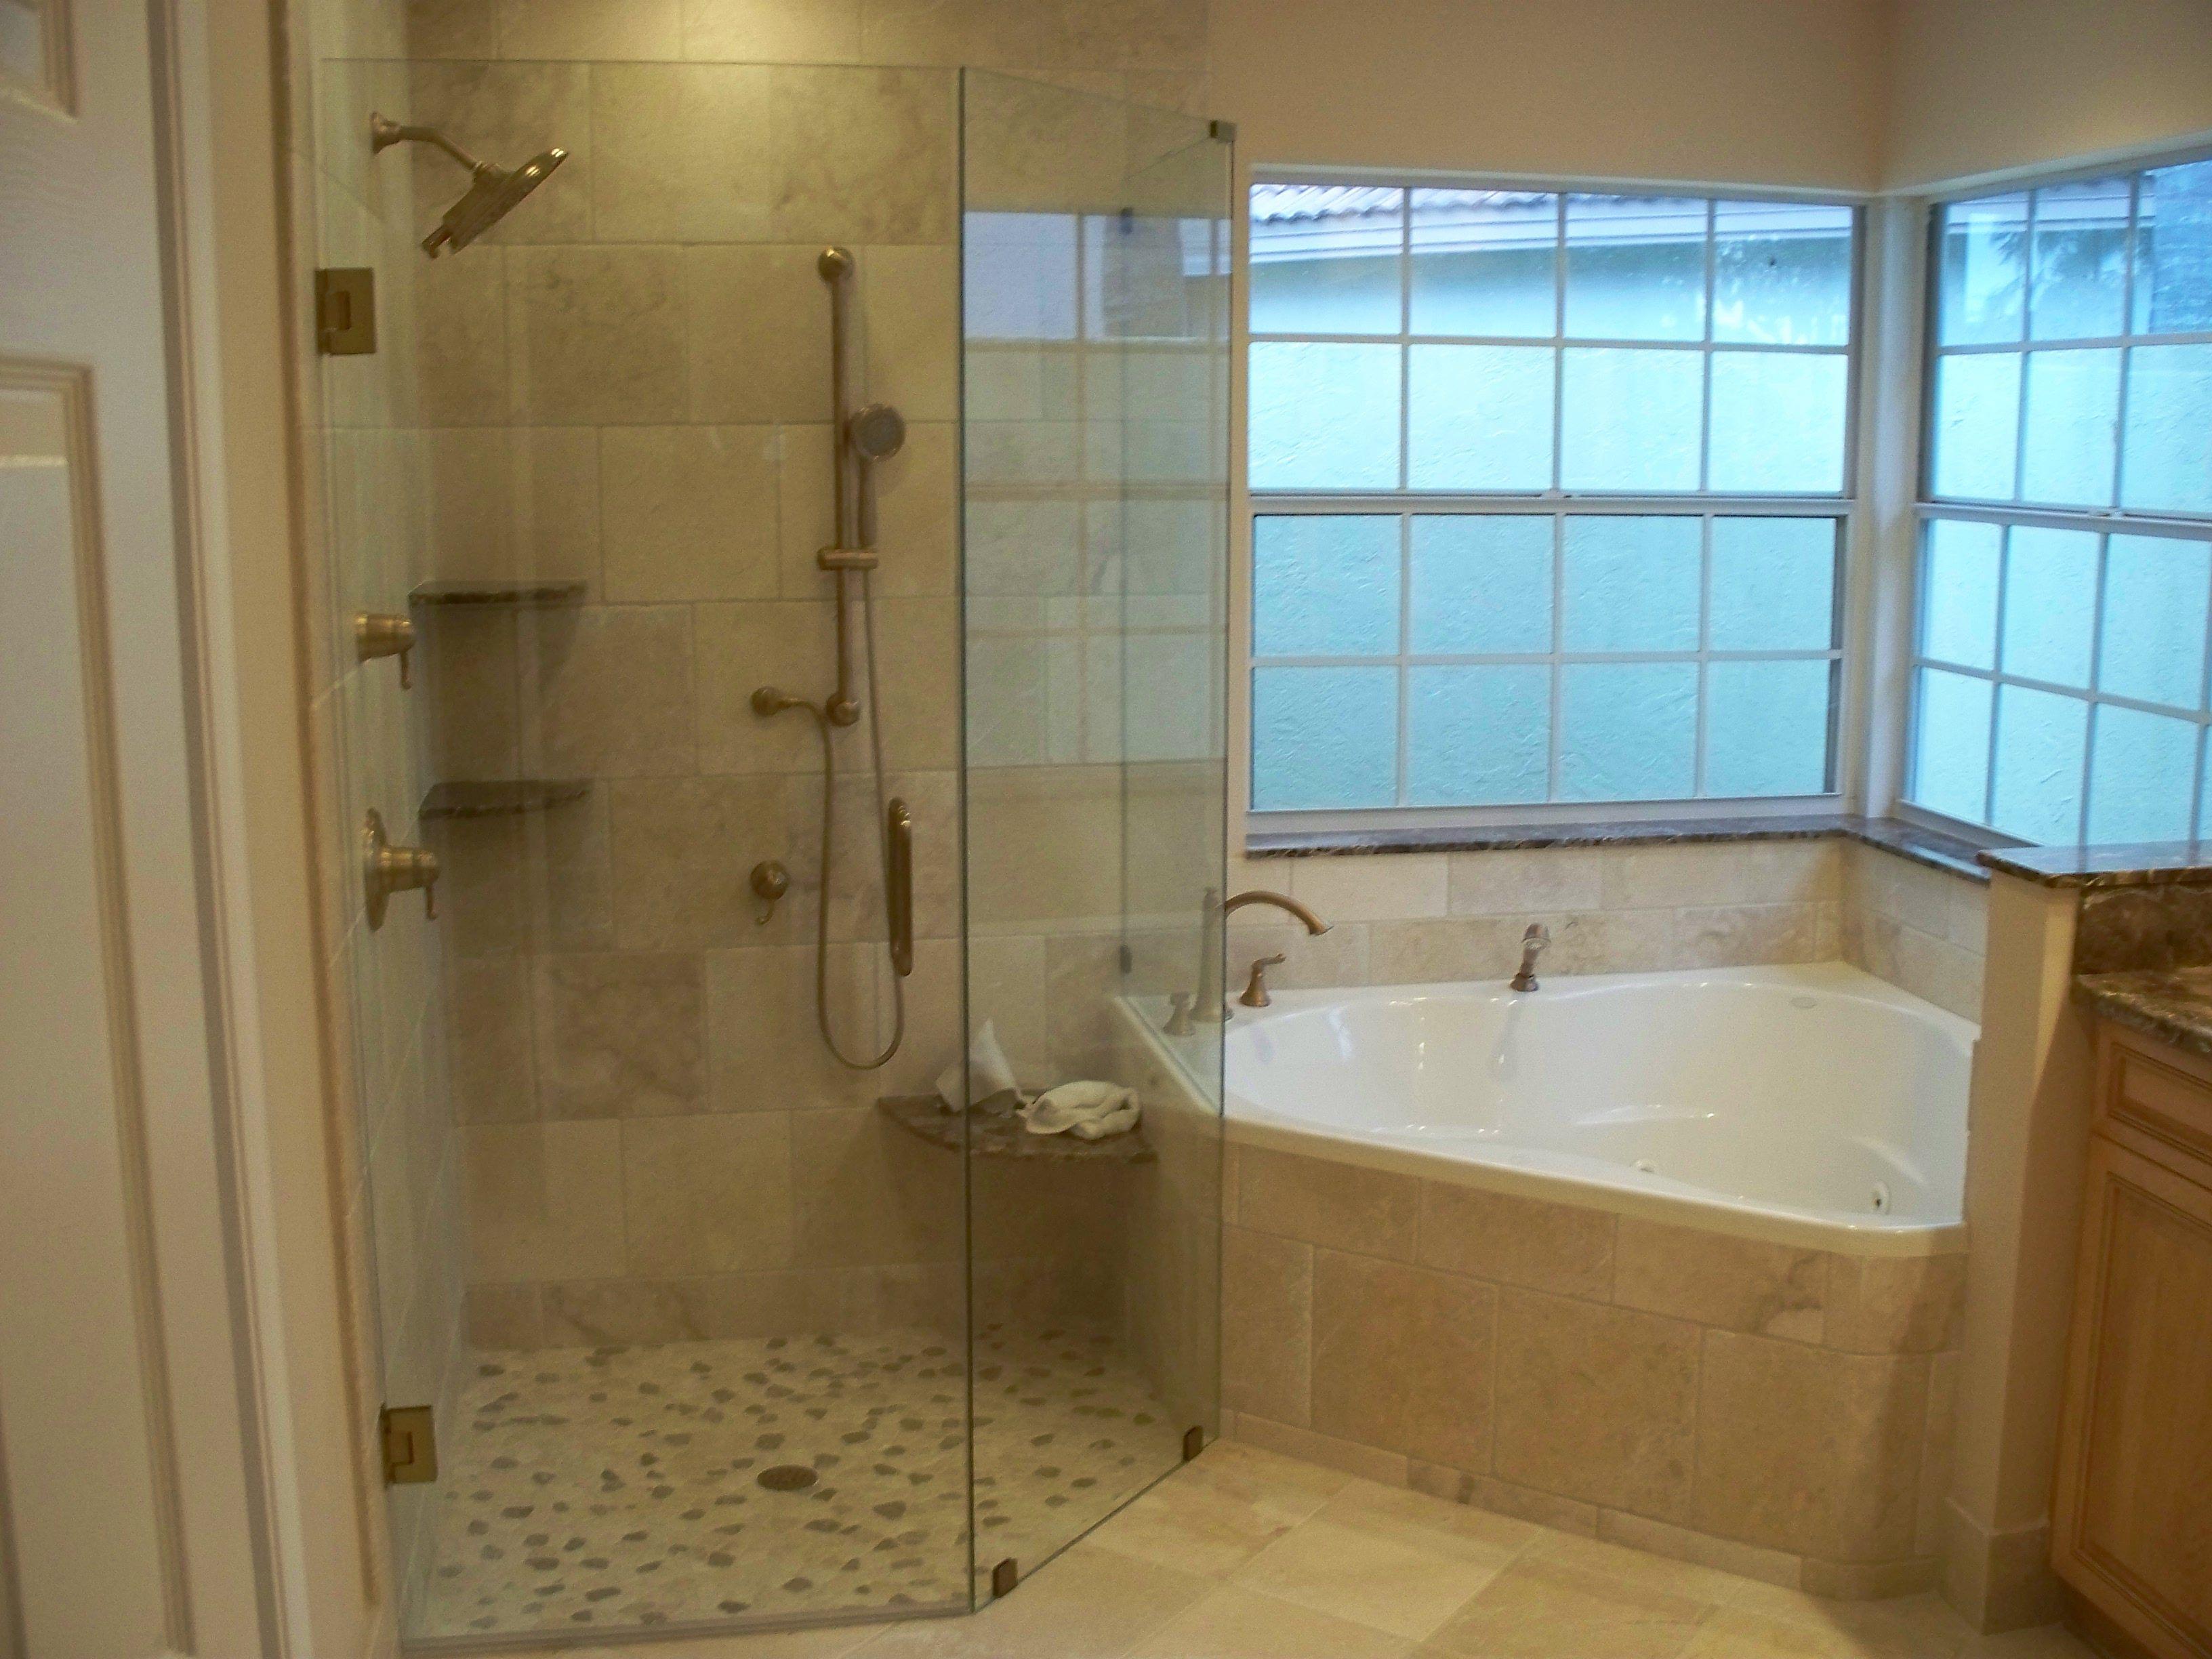 How to build a tiled shower tub - Corner Tub W Larger Walk In Shower Do Not Like The Wall Next To